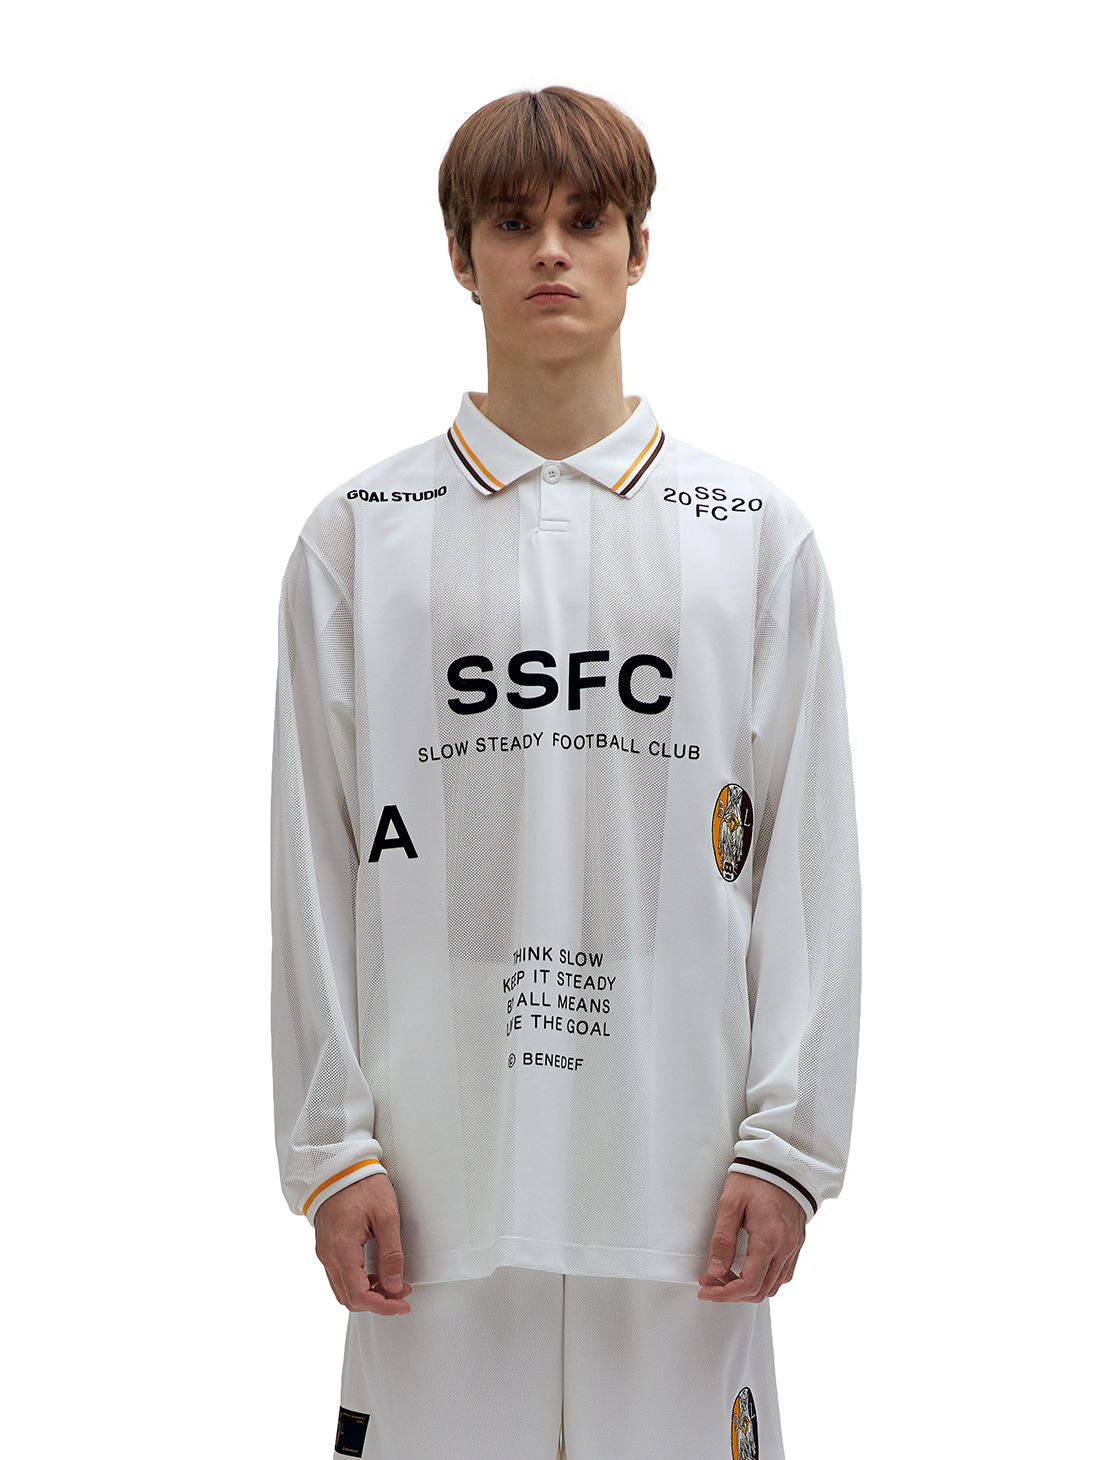 GOALSTUDIO SSFC UNIFORM LONG SLEEVE - WHITE(A)